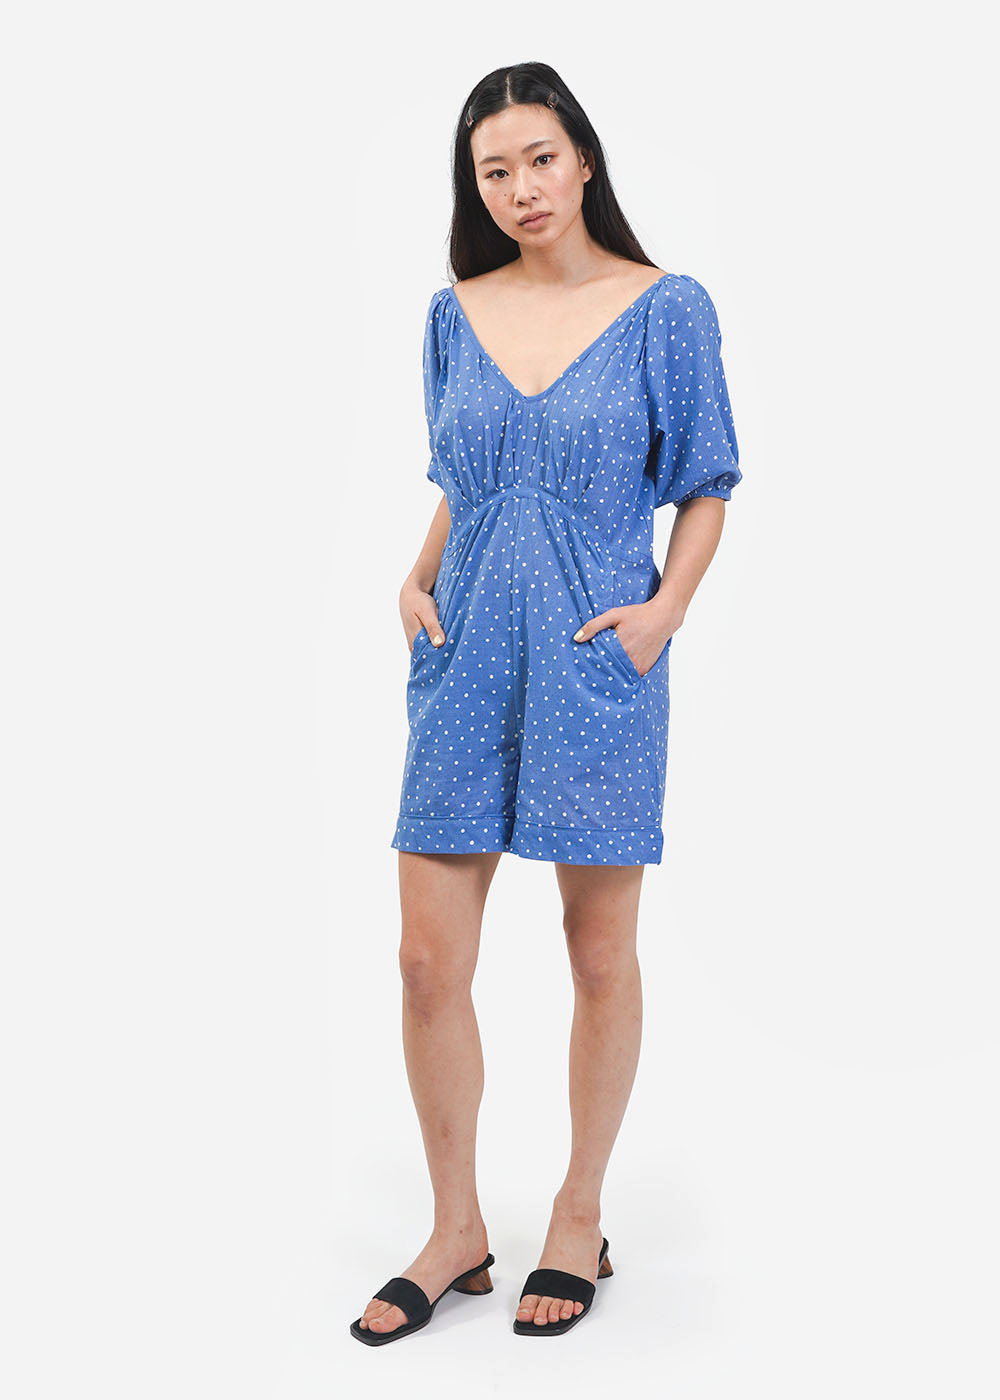 Ajaie Alaie Siesta Fiesta Romper — Shop sustainable fashion and slow fashion at New Classics Studios